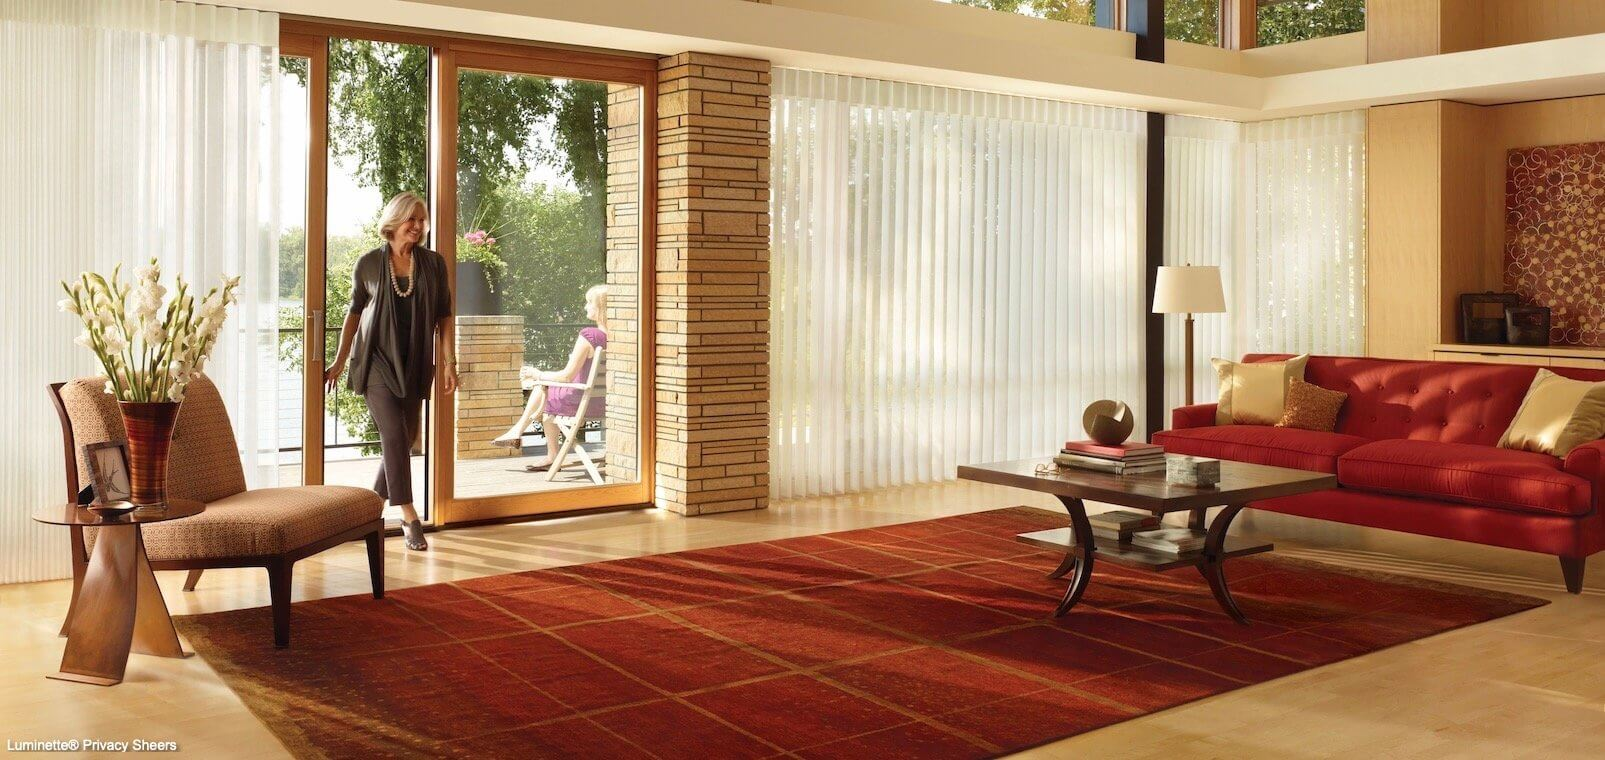 Luminette Privacy Sheers - Stria - Living Room